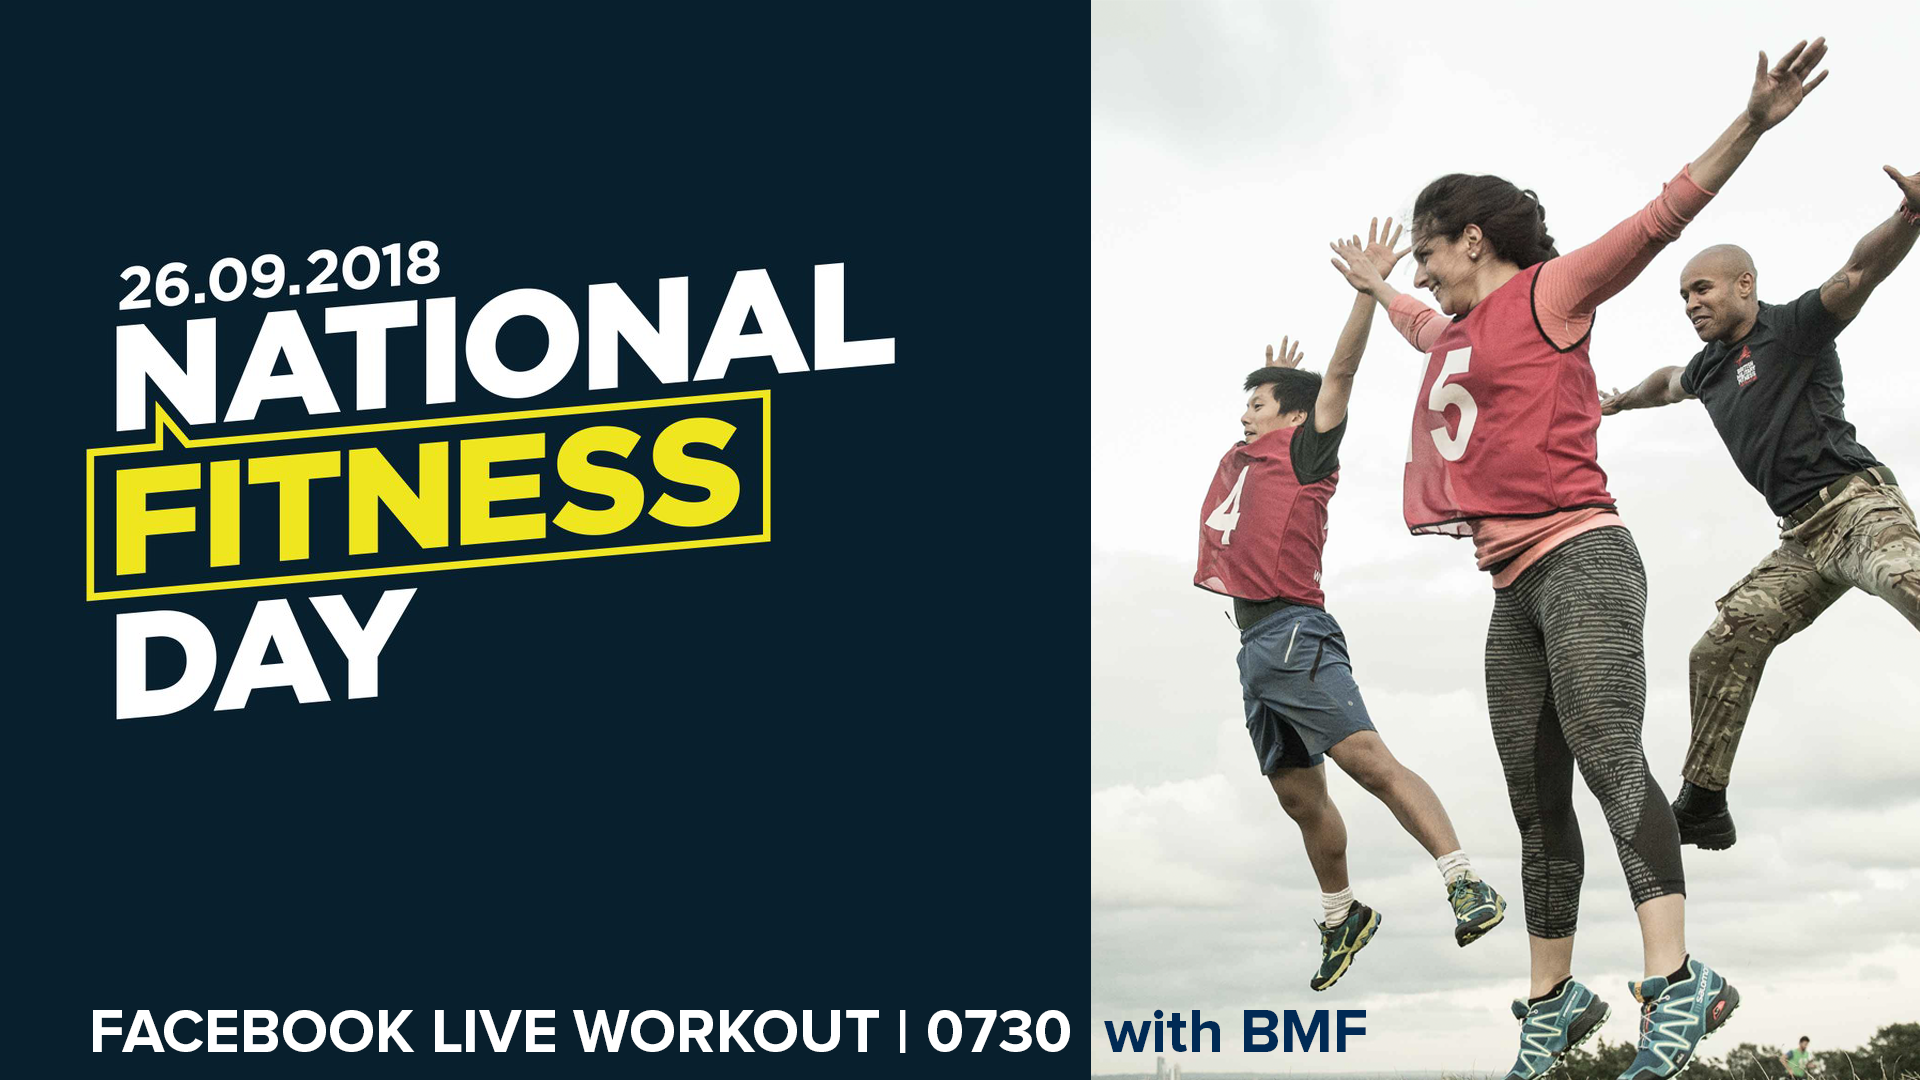 BMF Live Workout with Bear Grylls: National Fitness Day 2018